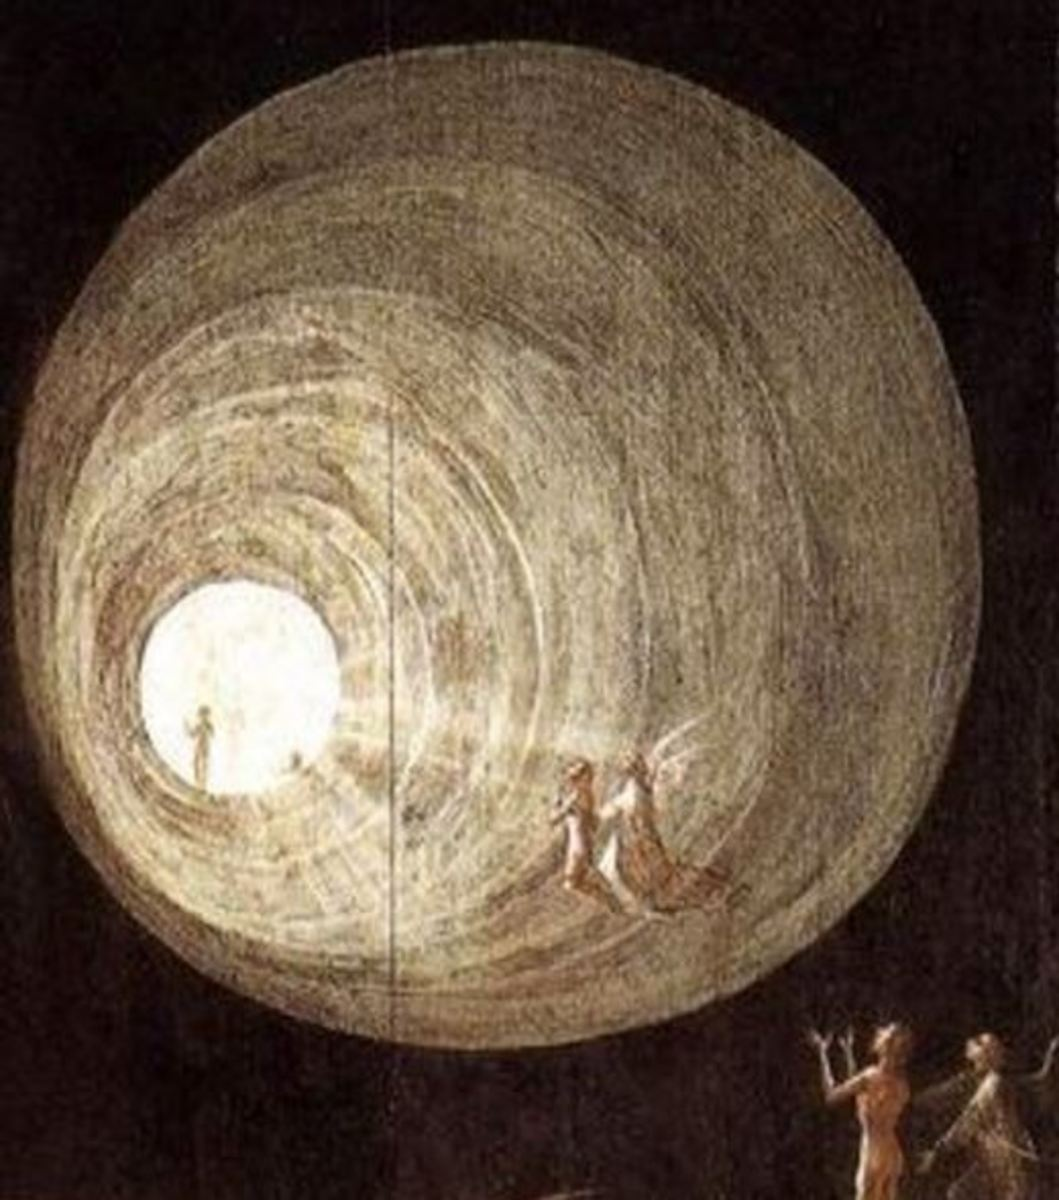 Ascent of the Blessed, by Hieronymus Bosch (1505-1515)